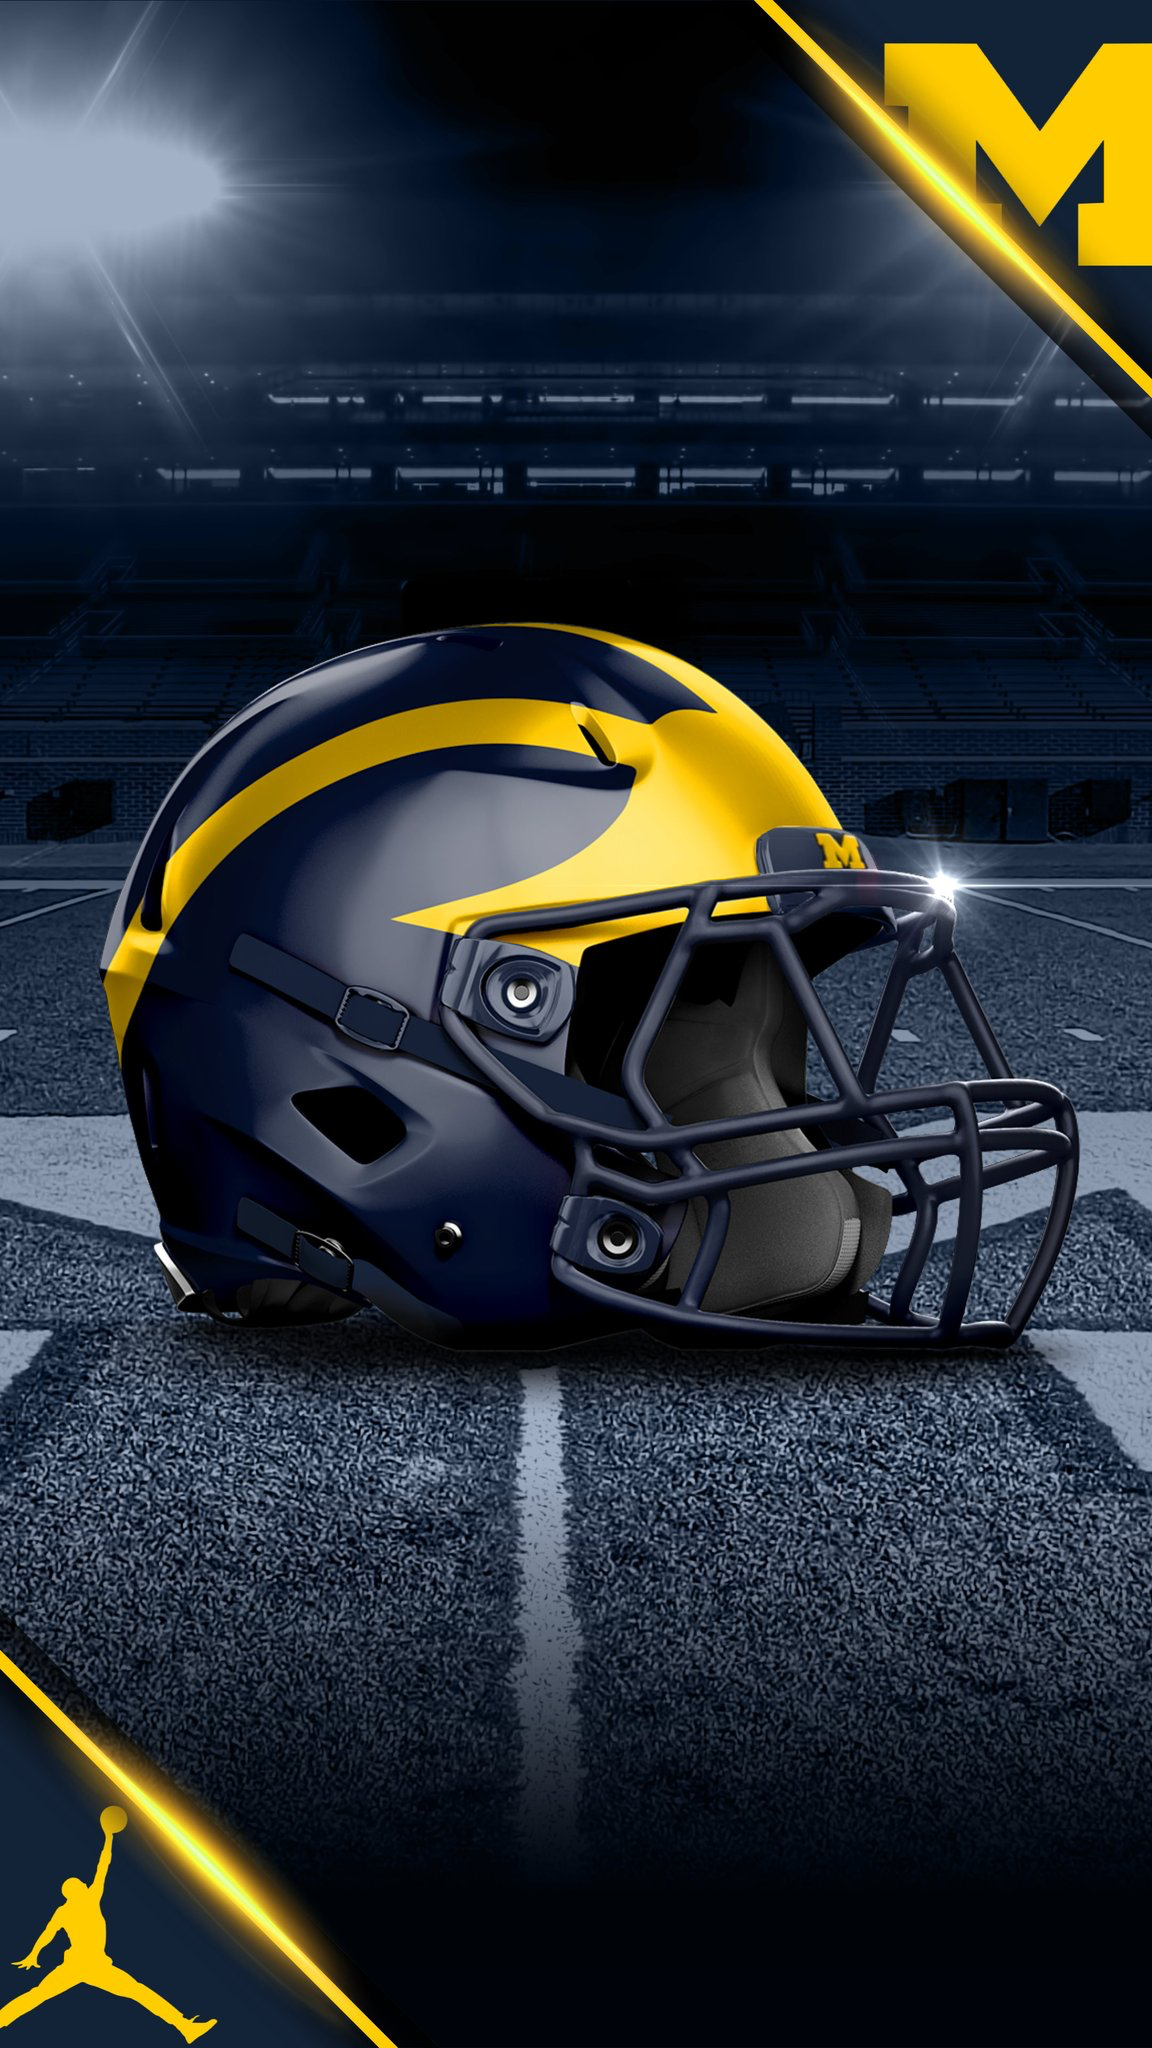 Pin By Dave S Place On Michigan Football Michigan Wolverines Football Wolverines Football Michigan Football Helmet